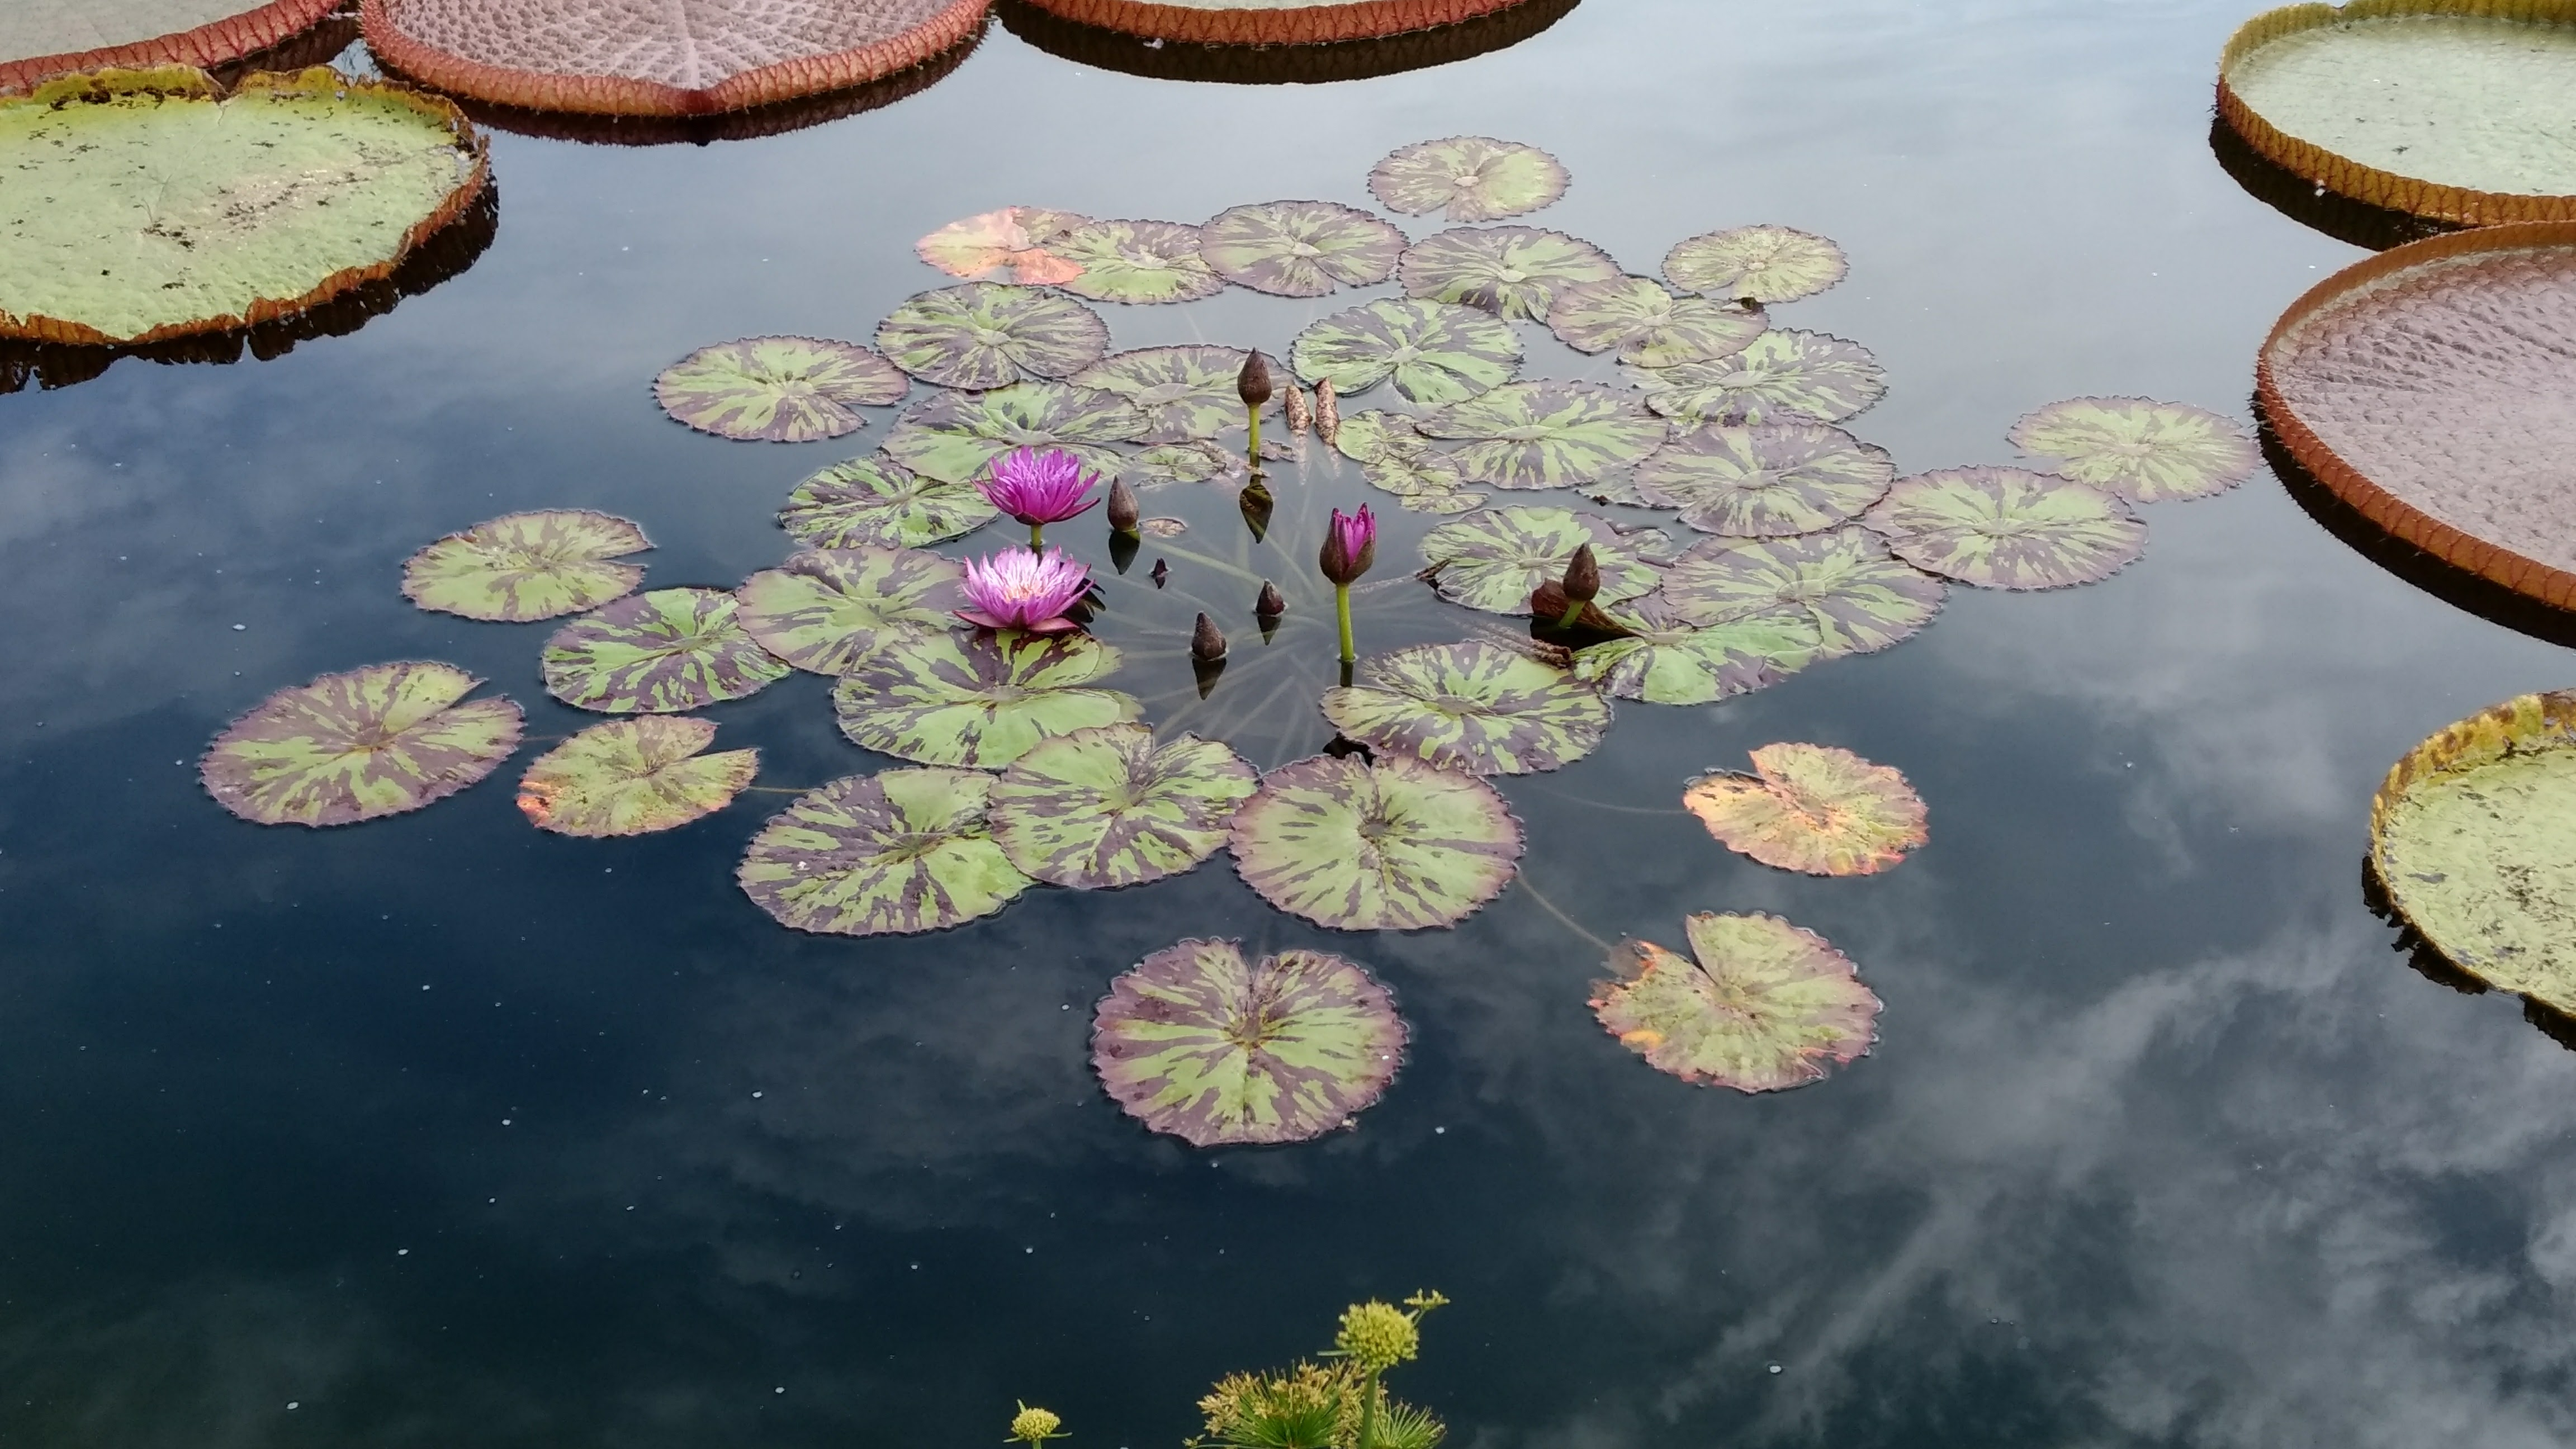 patch of lilly pads and flowers